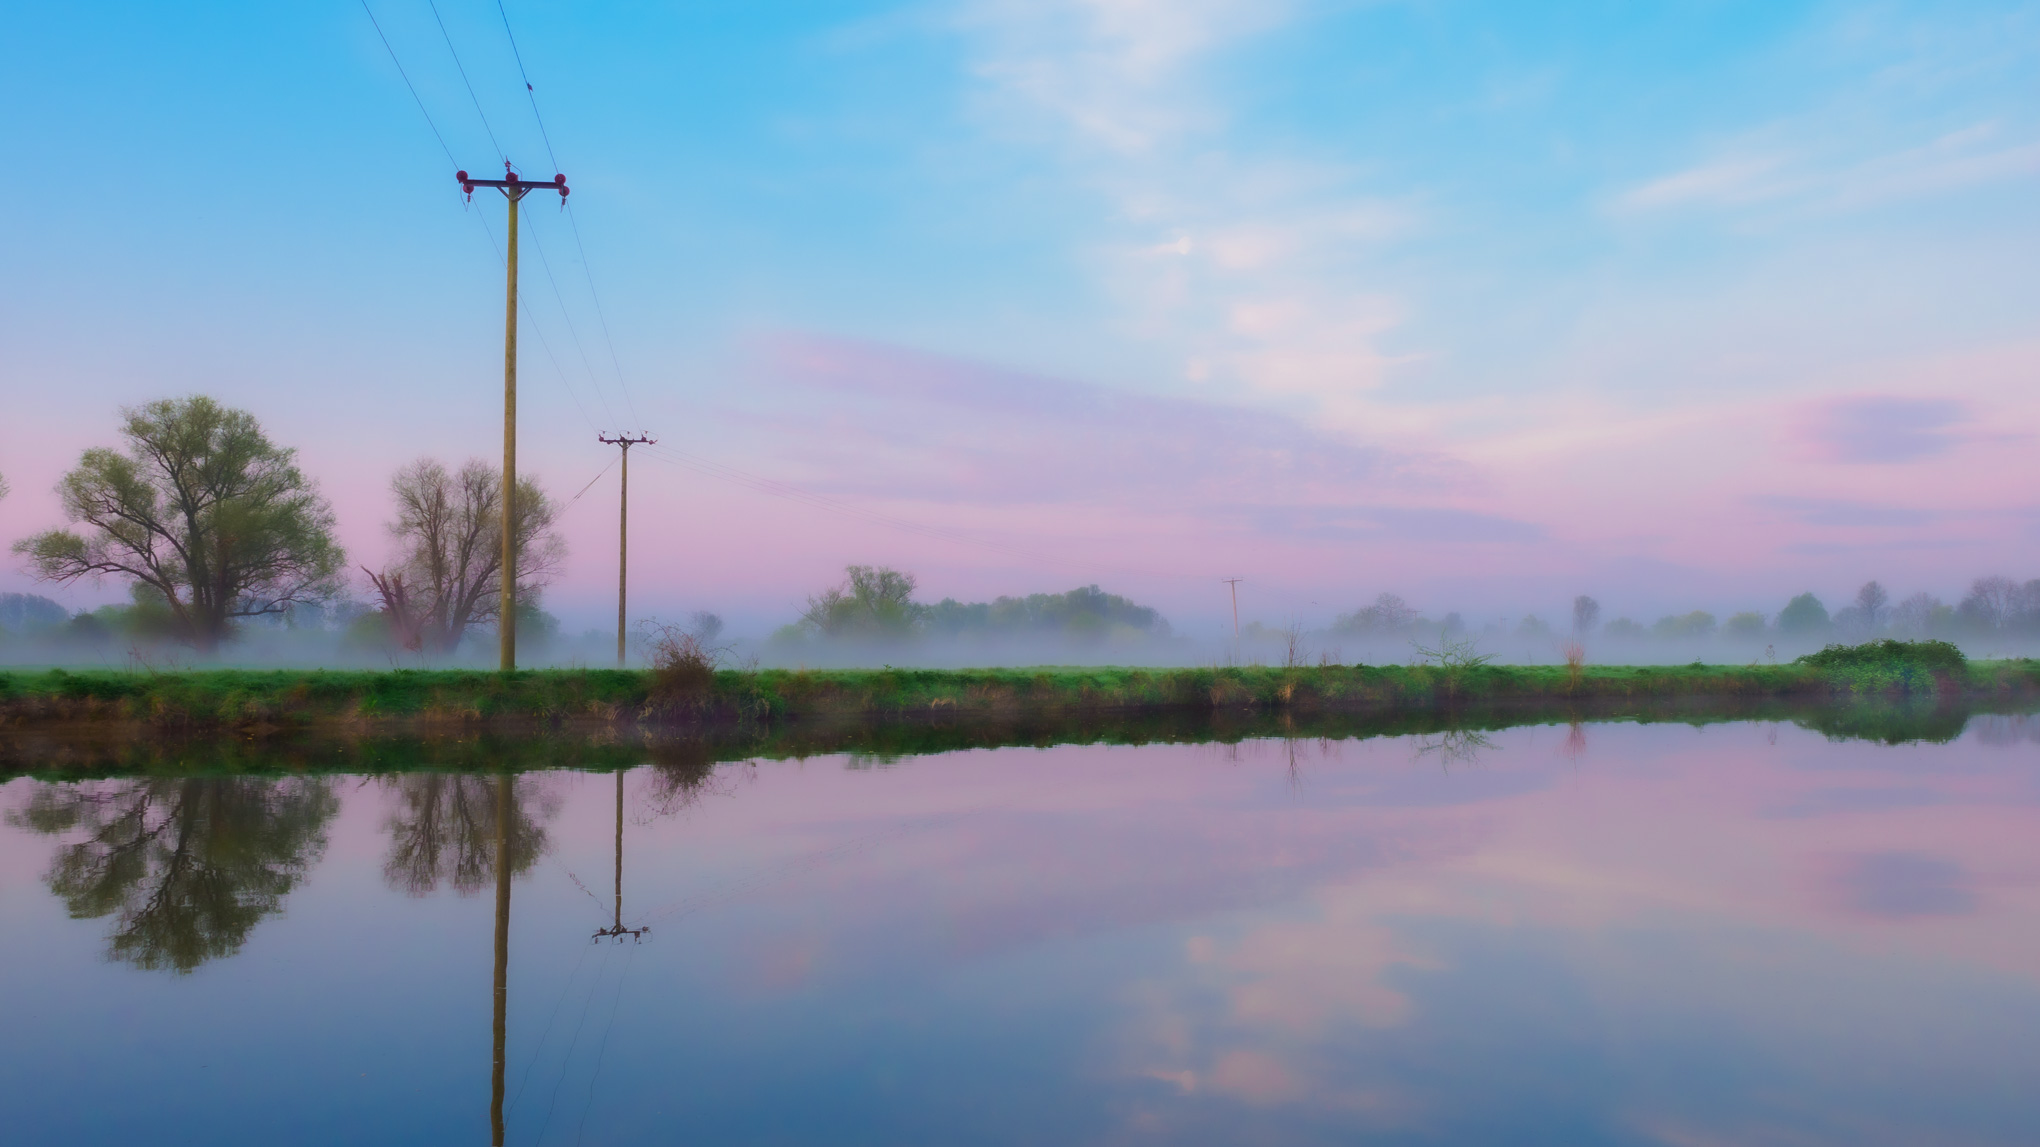 Mist and purple cloud reflected on river